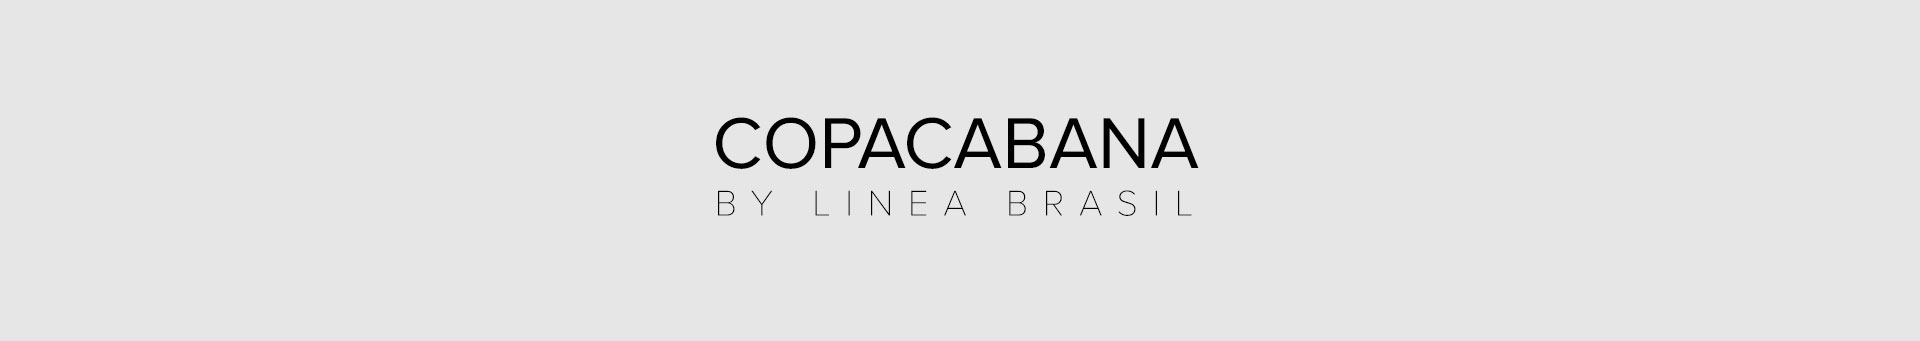 Copacabana Entertainment Center